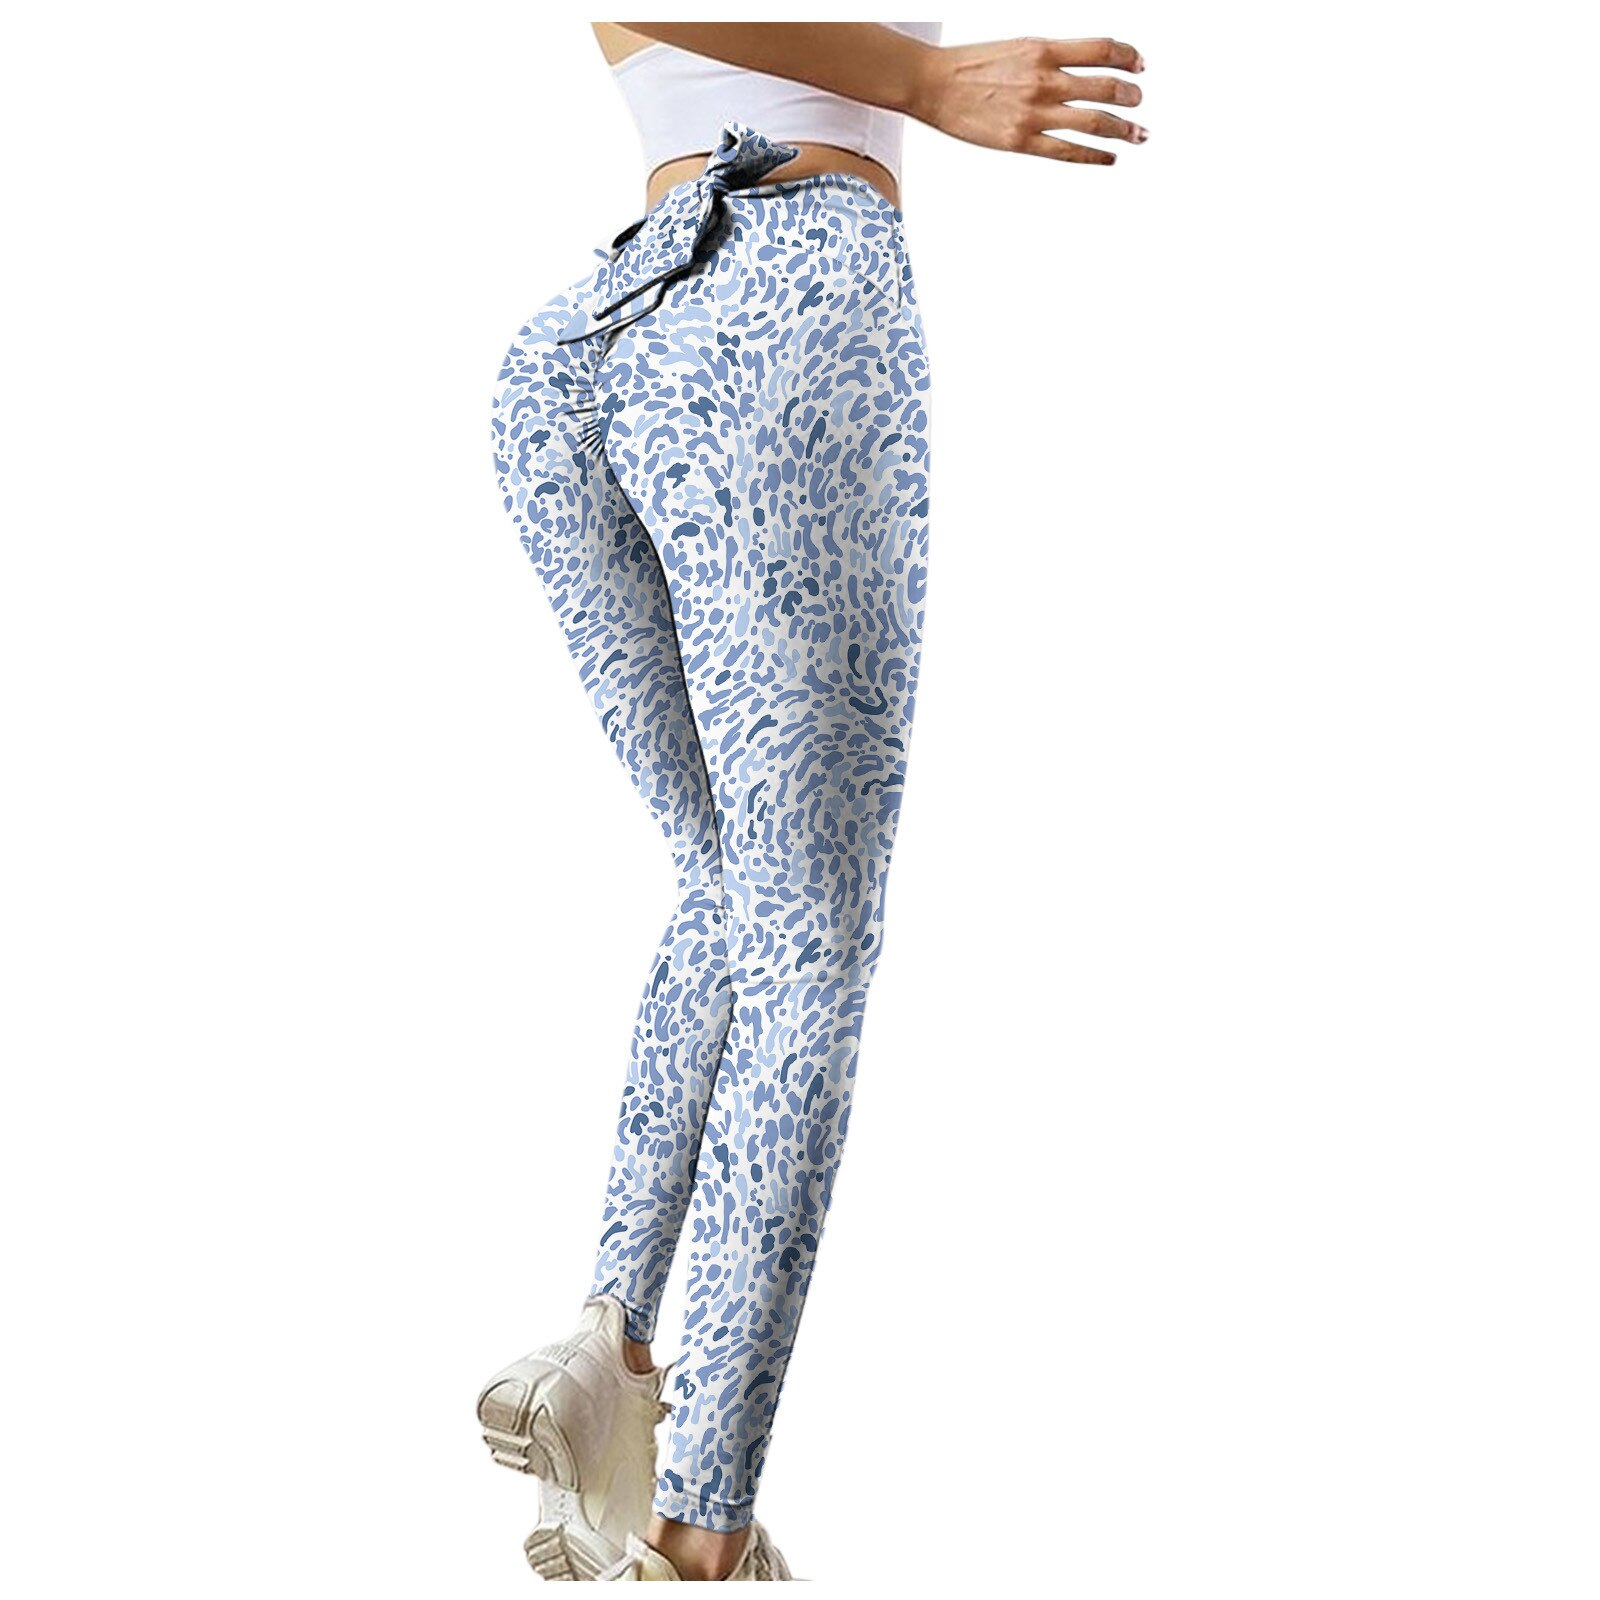 Women's Seamless High Waisted Sports Yoga Pants Sports Leggings Stretch Gym Athletic Workout Running Leggings Tights Pants